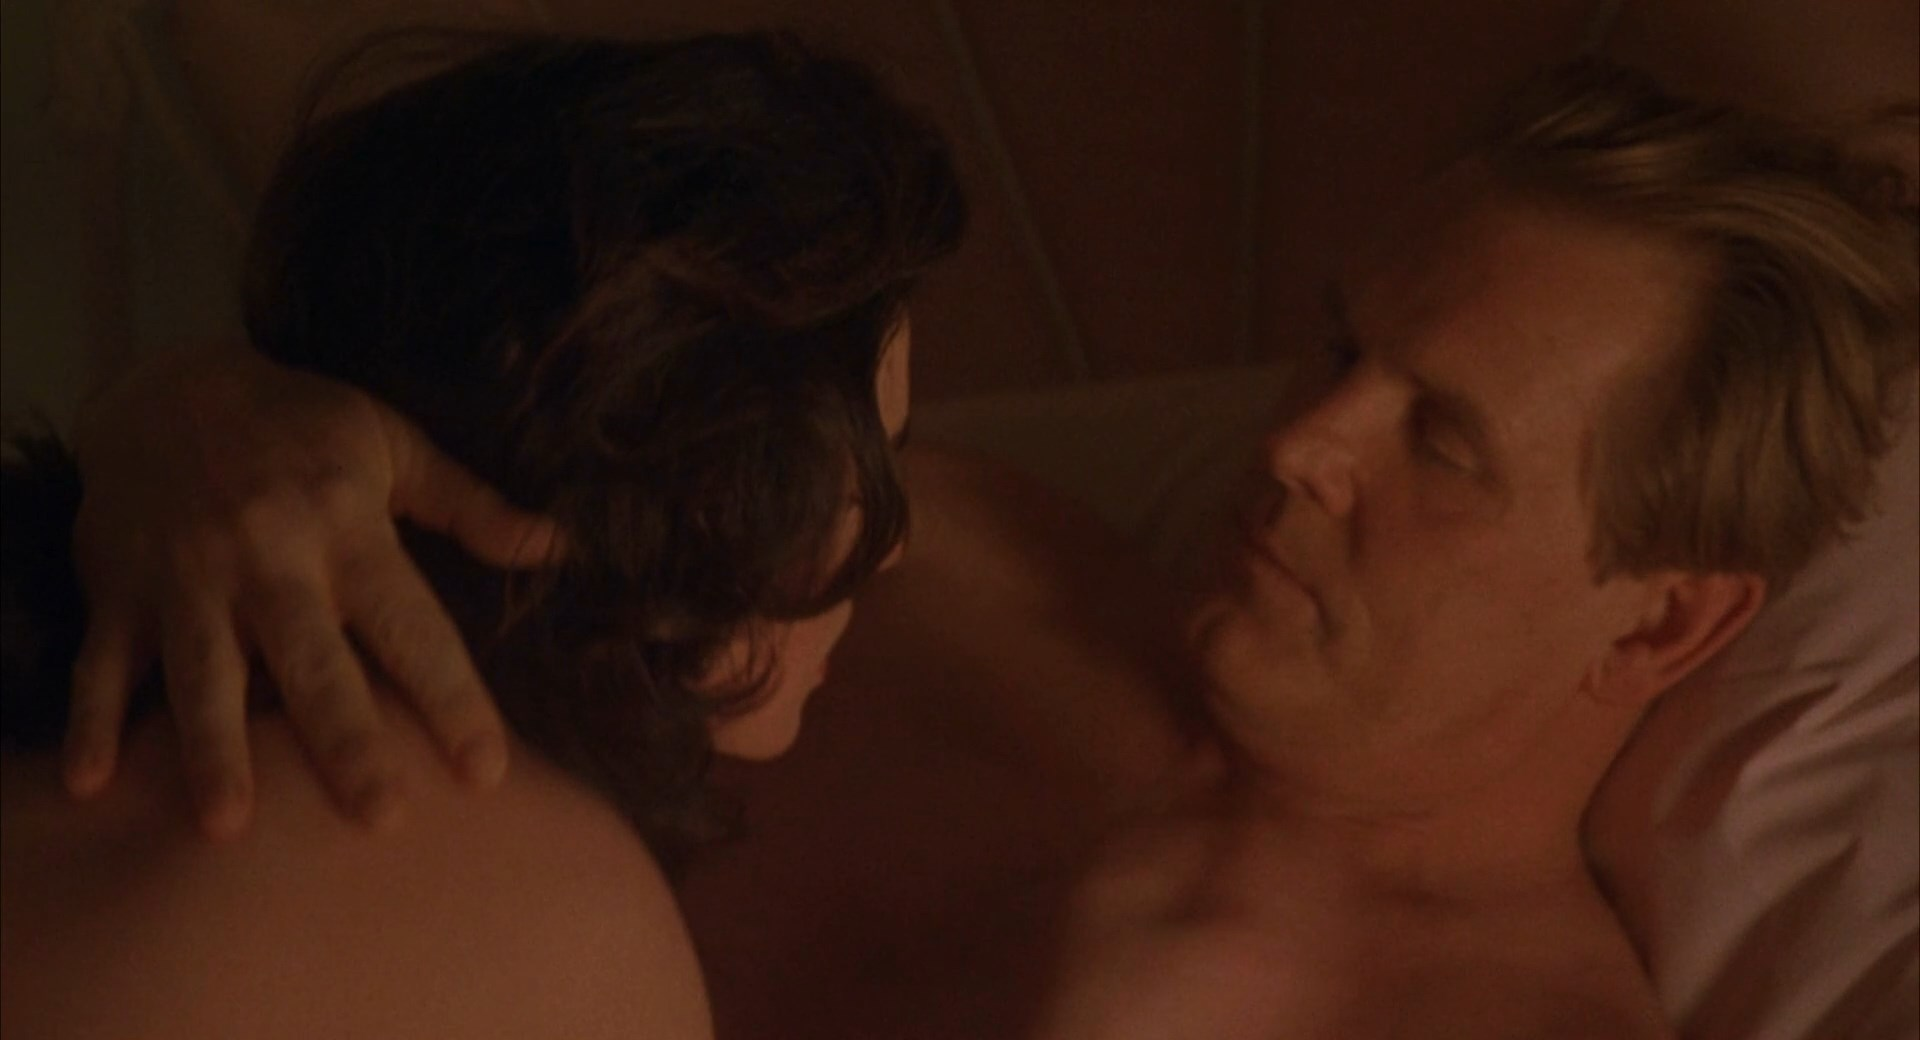 Jennifer connelly overt sex act sex scenes